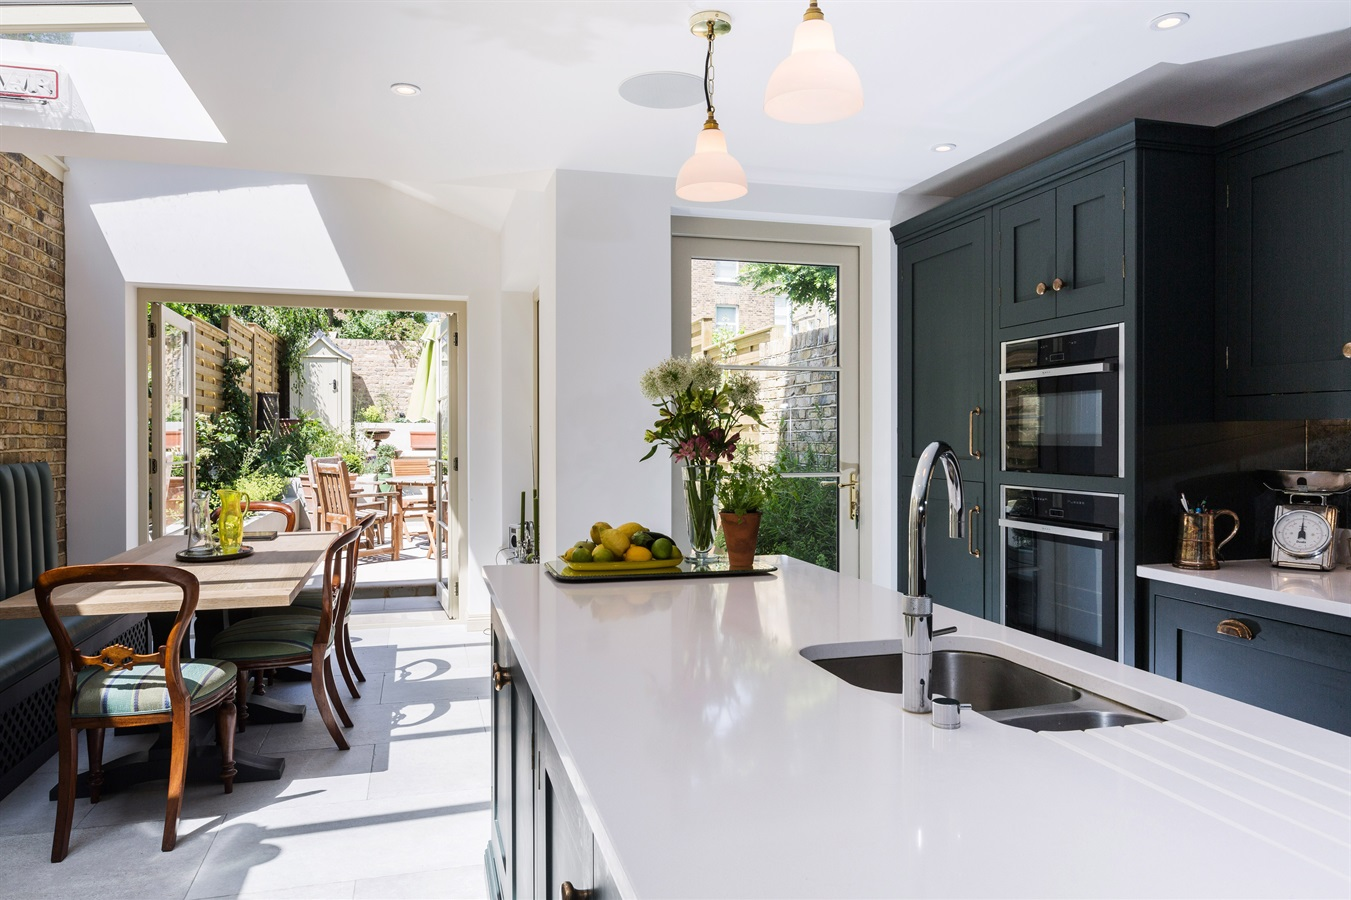 Burlanes Bespoke Classic Hoyden Kitchen - Burlanes were commissioned to design and create a kitchen with charisma and rustic charm, and handmade furniture for elsewhere in the home.